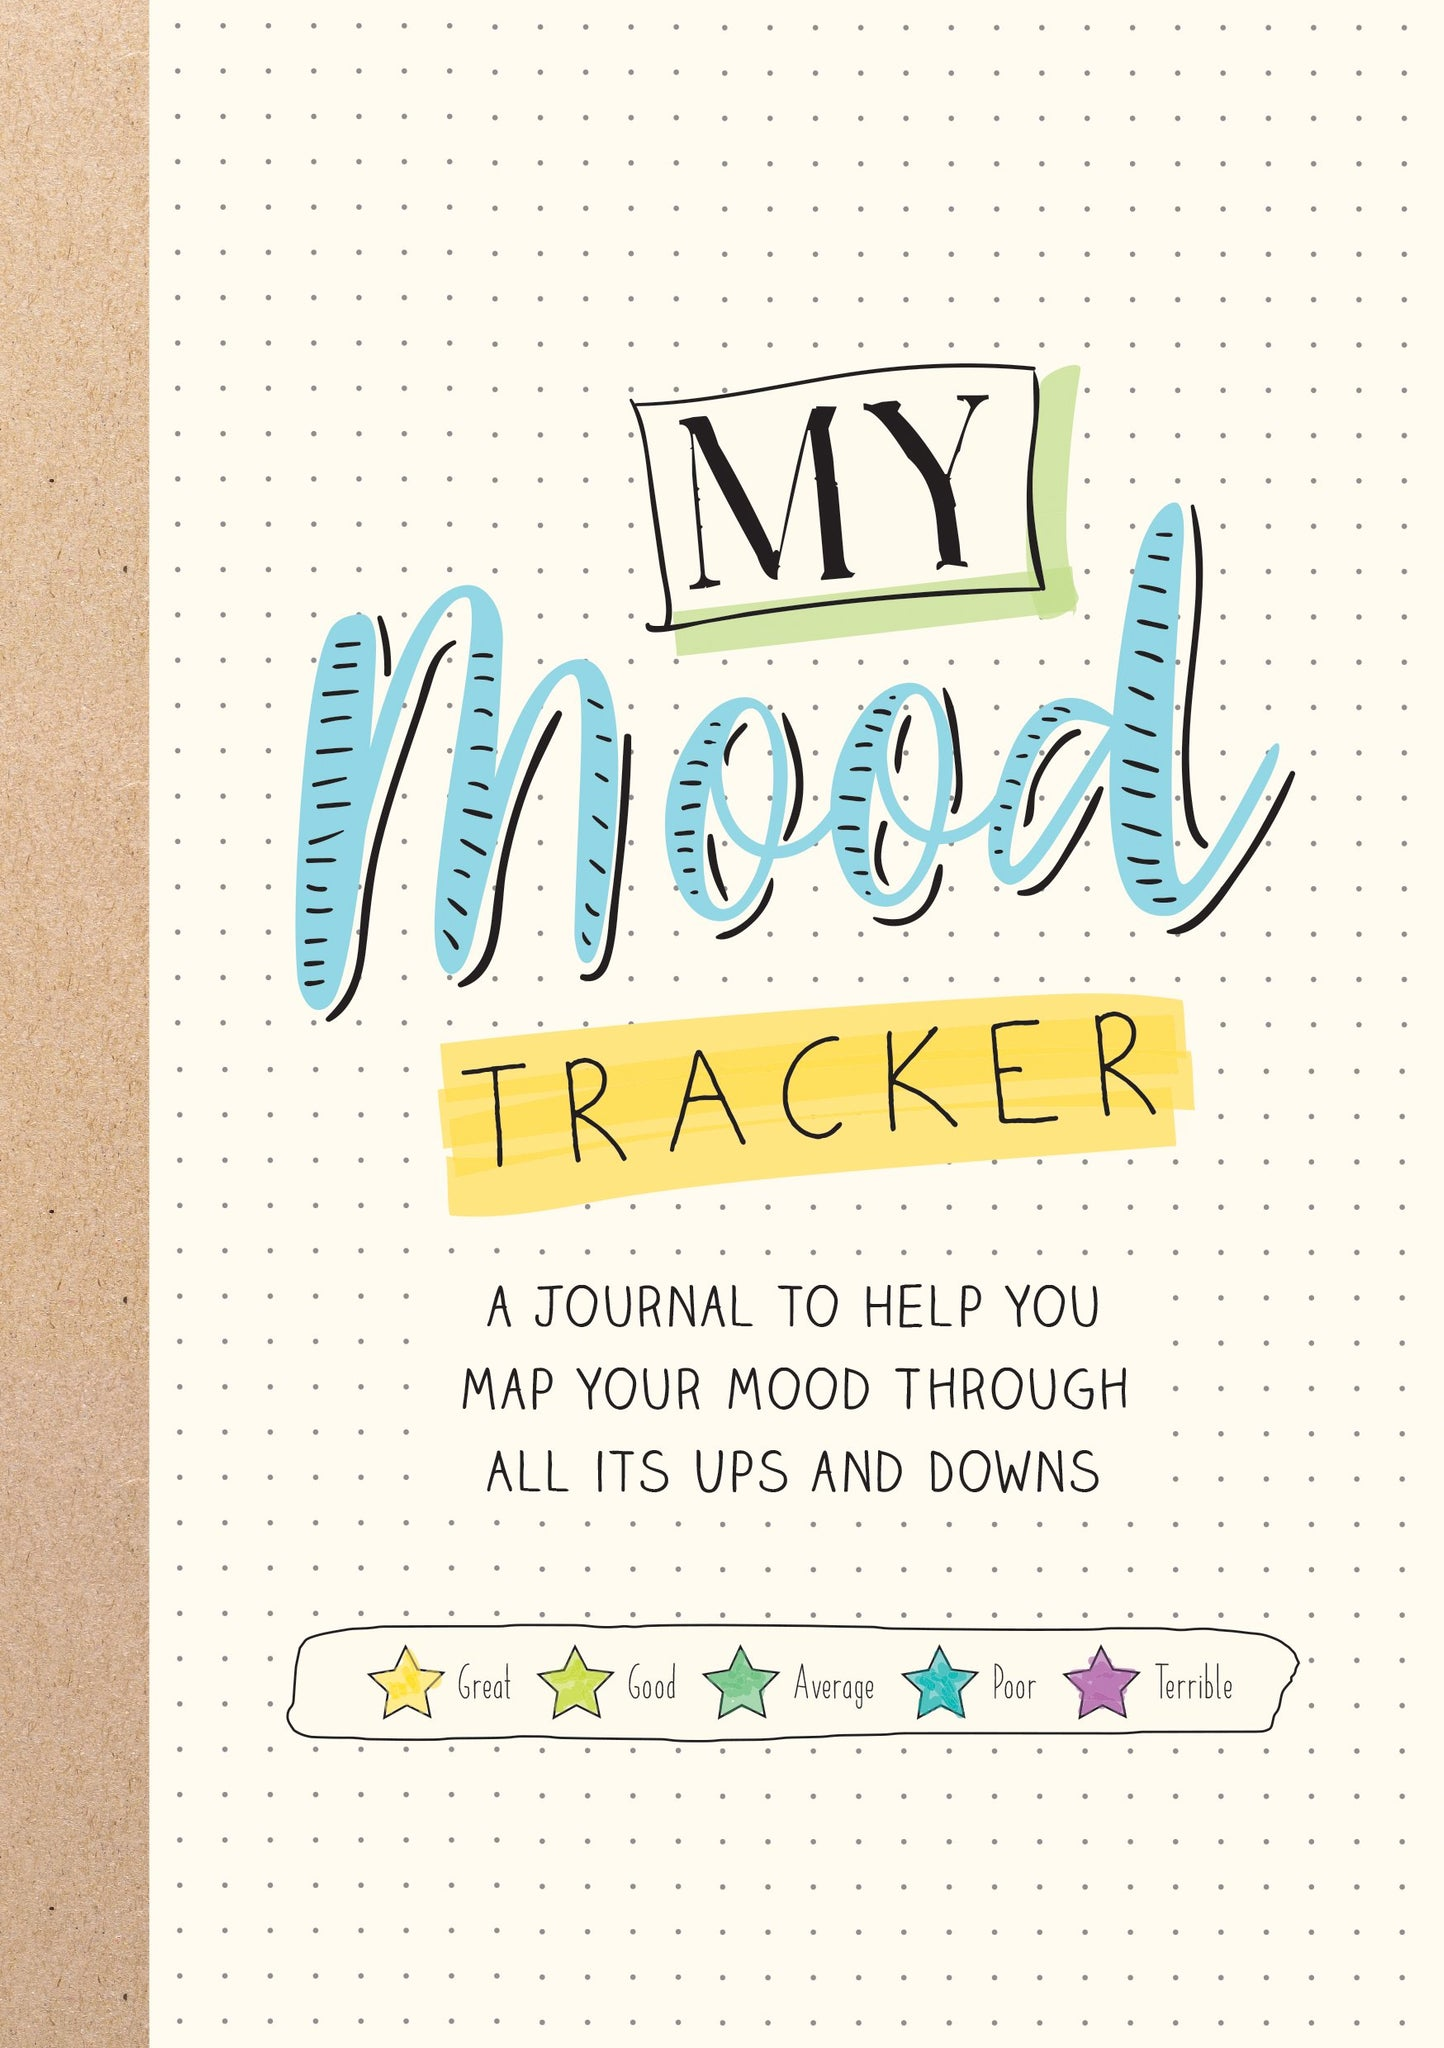 My Mood Tracker: A Journal to Help You Map Your Mood Through All Its Ups and Downs